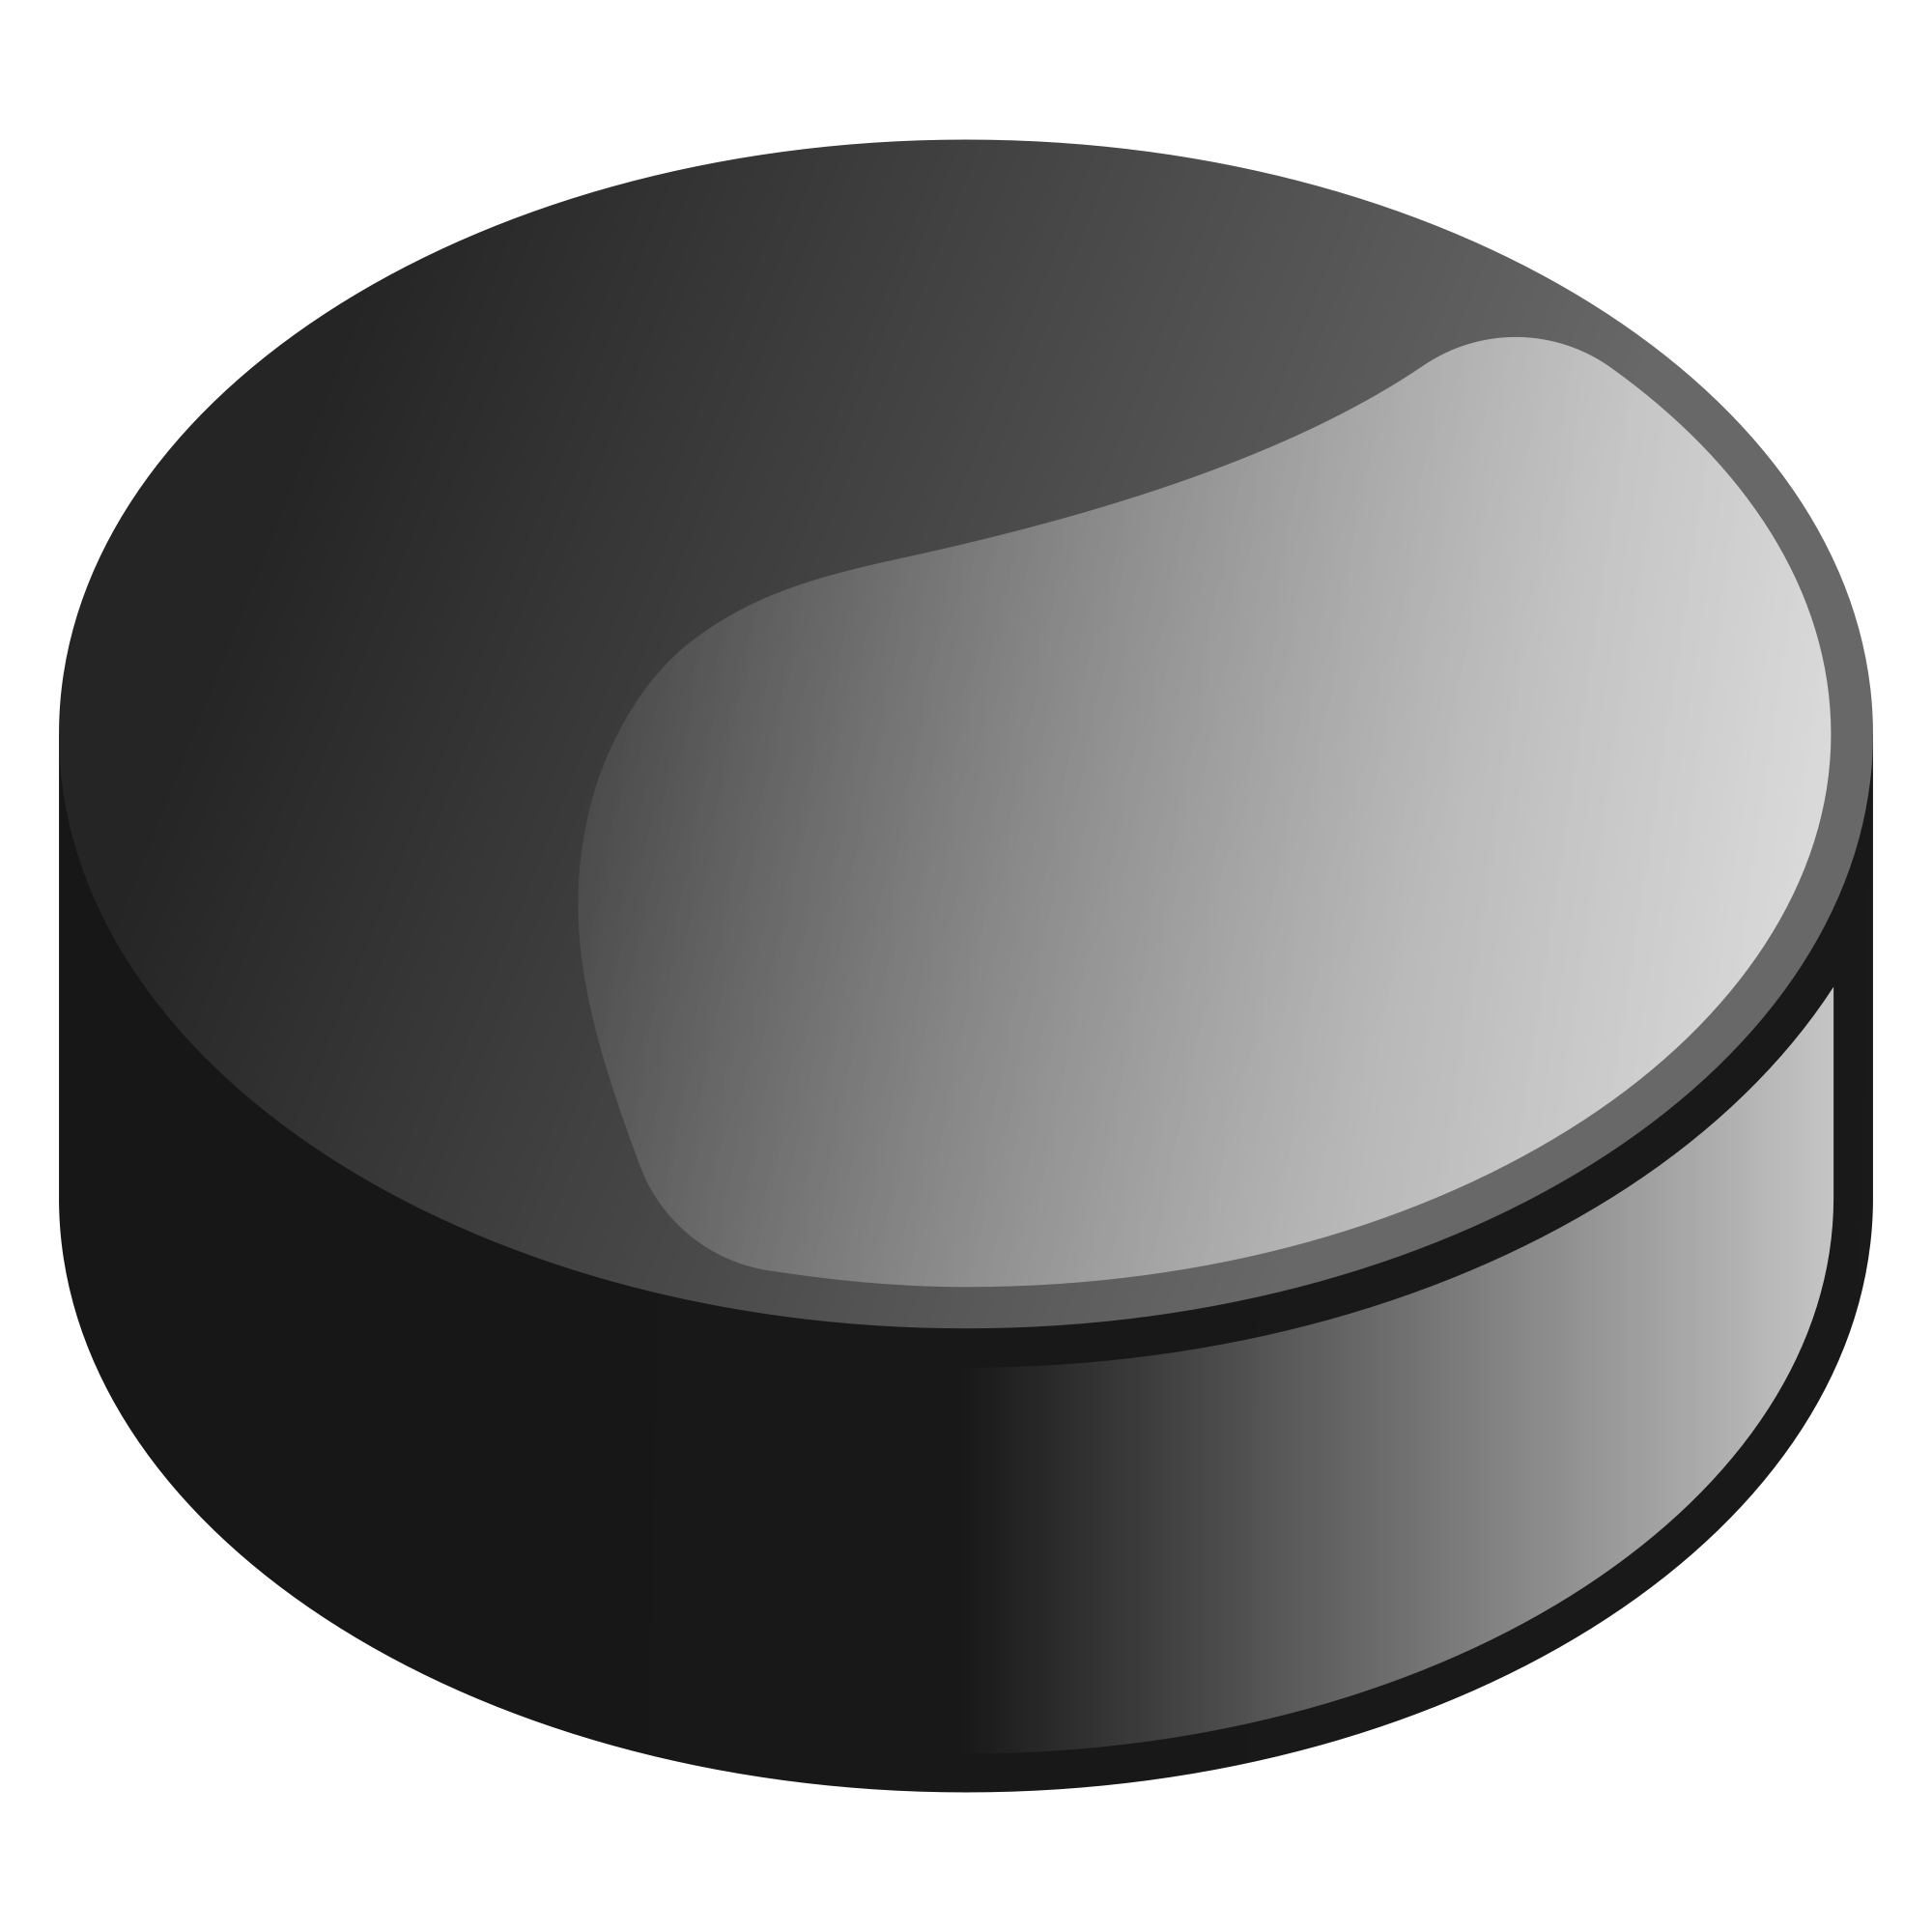 Open PlusPng.com  - Hockey Puck PNG Black And White